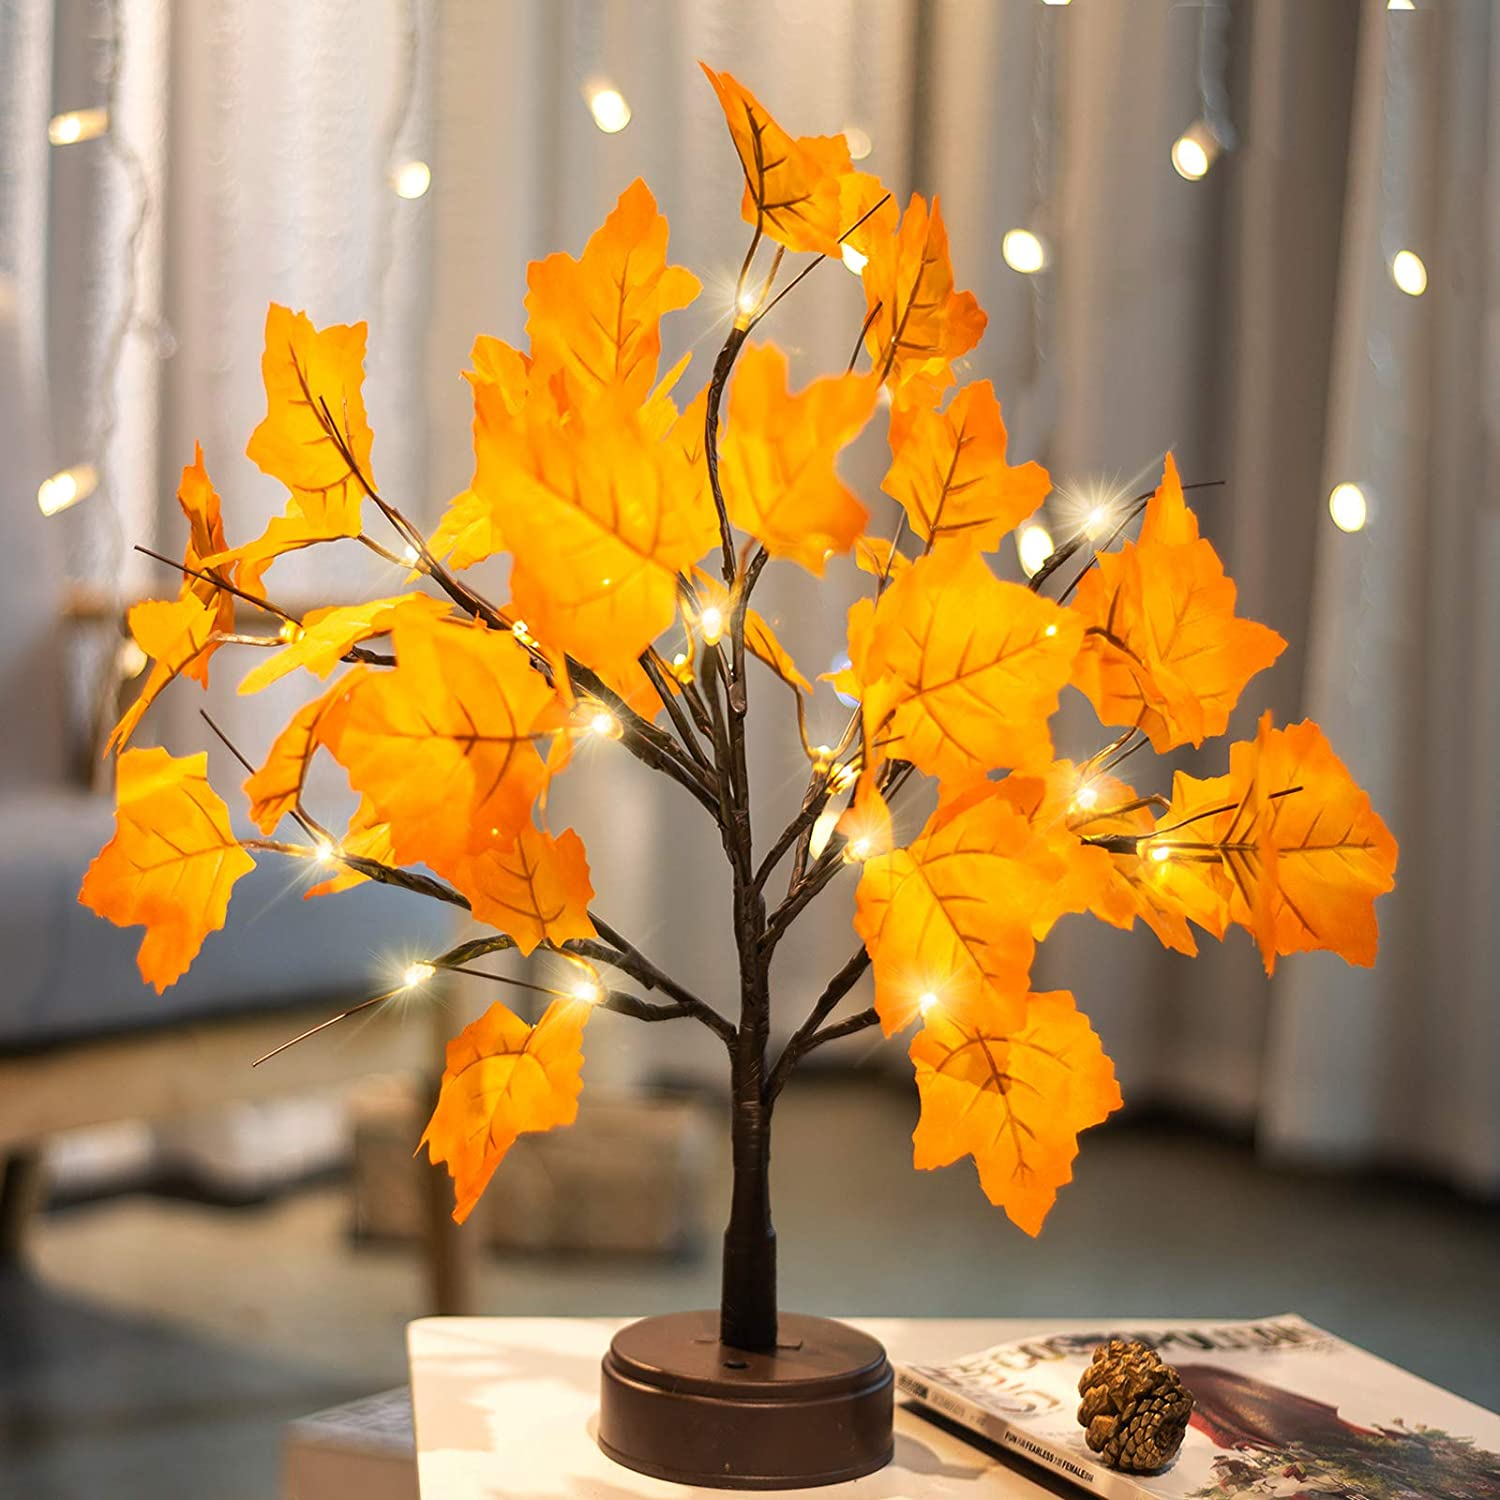 Pooqla Lighted Maple Tree Artificial Fall Tree Light 24 LED Maple Leaves Autumn Tree Light Tabletop Decor for Thanksgiving Christmas Party Home Decoration Warm White